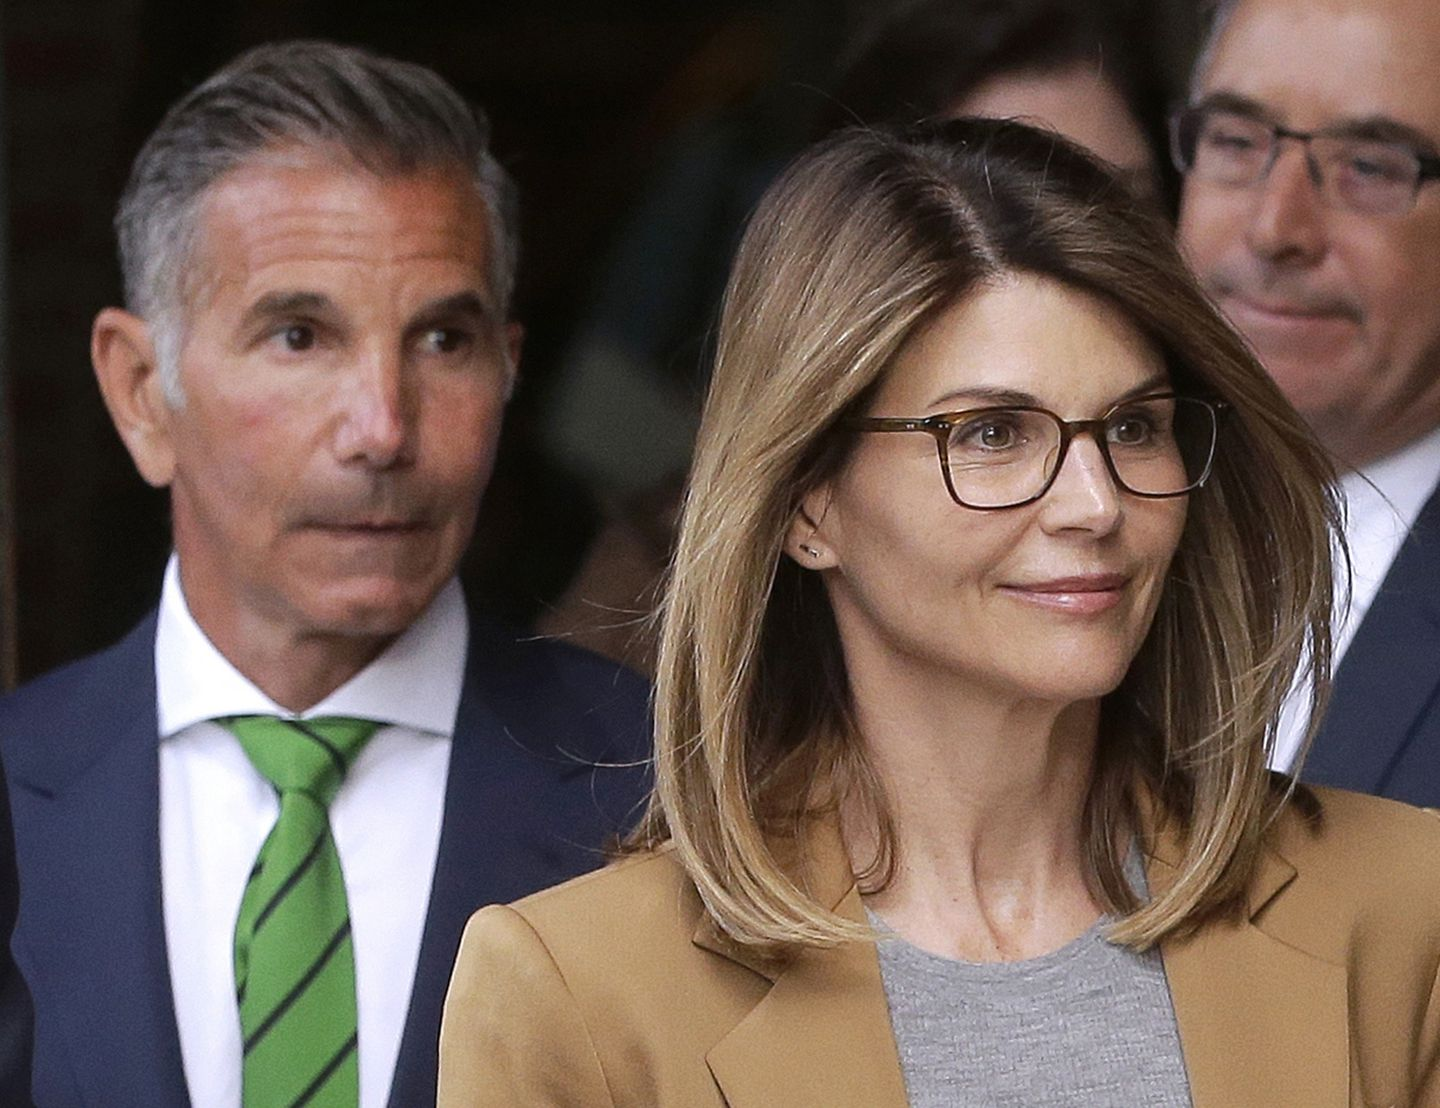 Lori Loughlin and her husband, Mossimo Giannulli, departed federal court in Boston after facing charges in April.